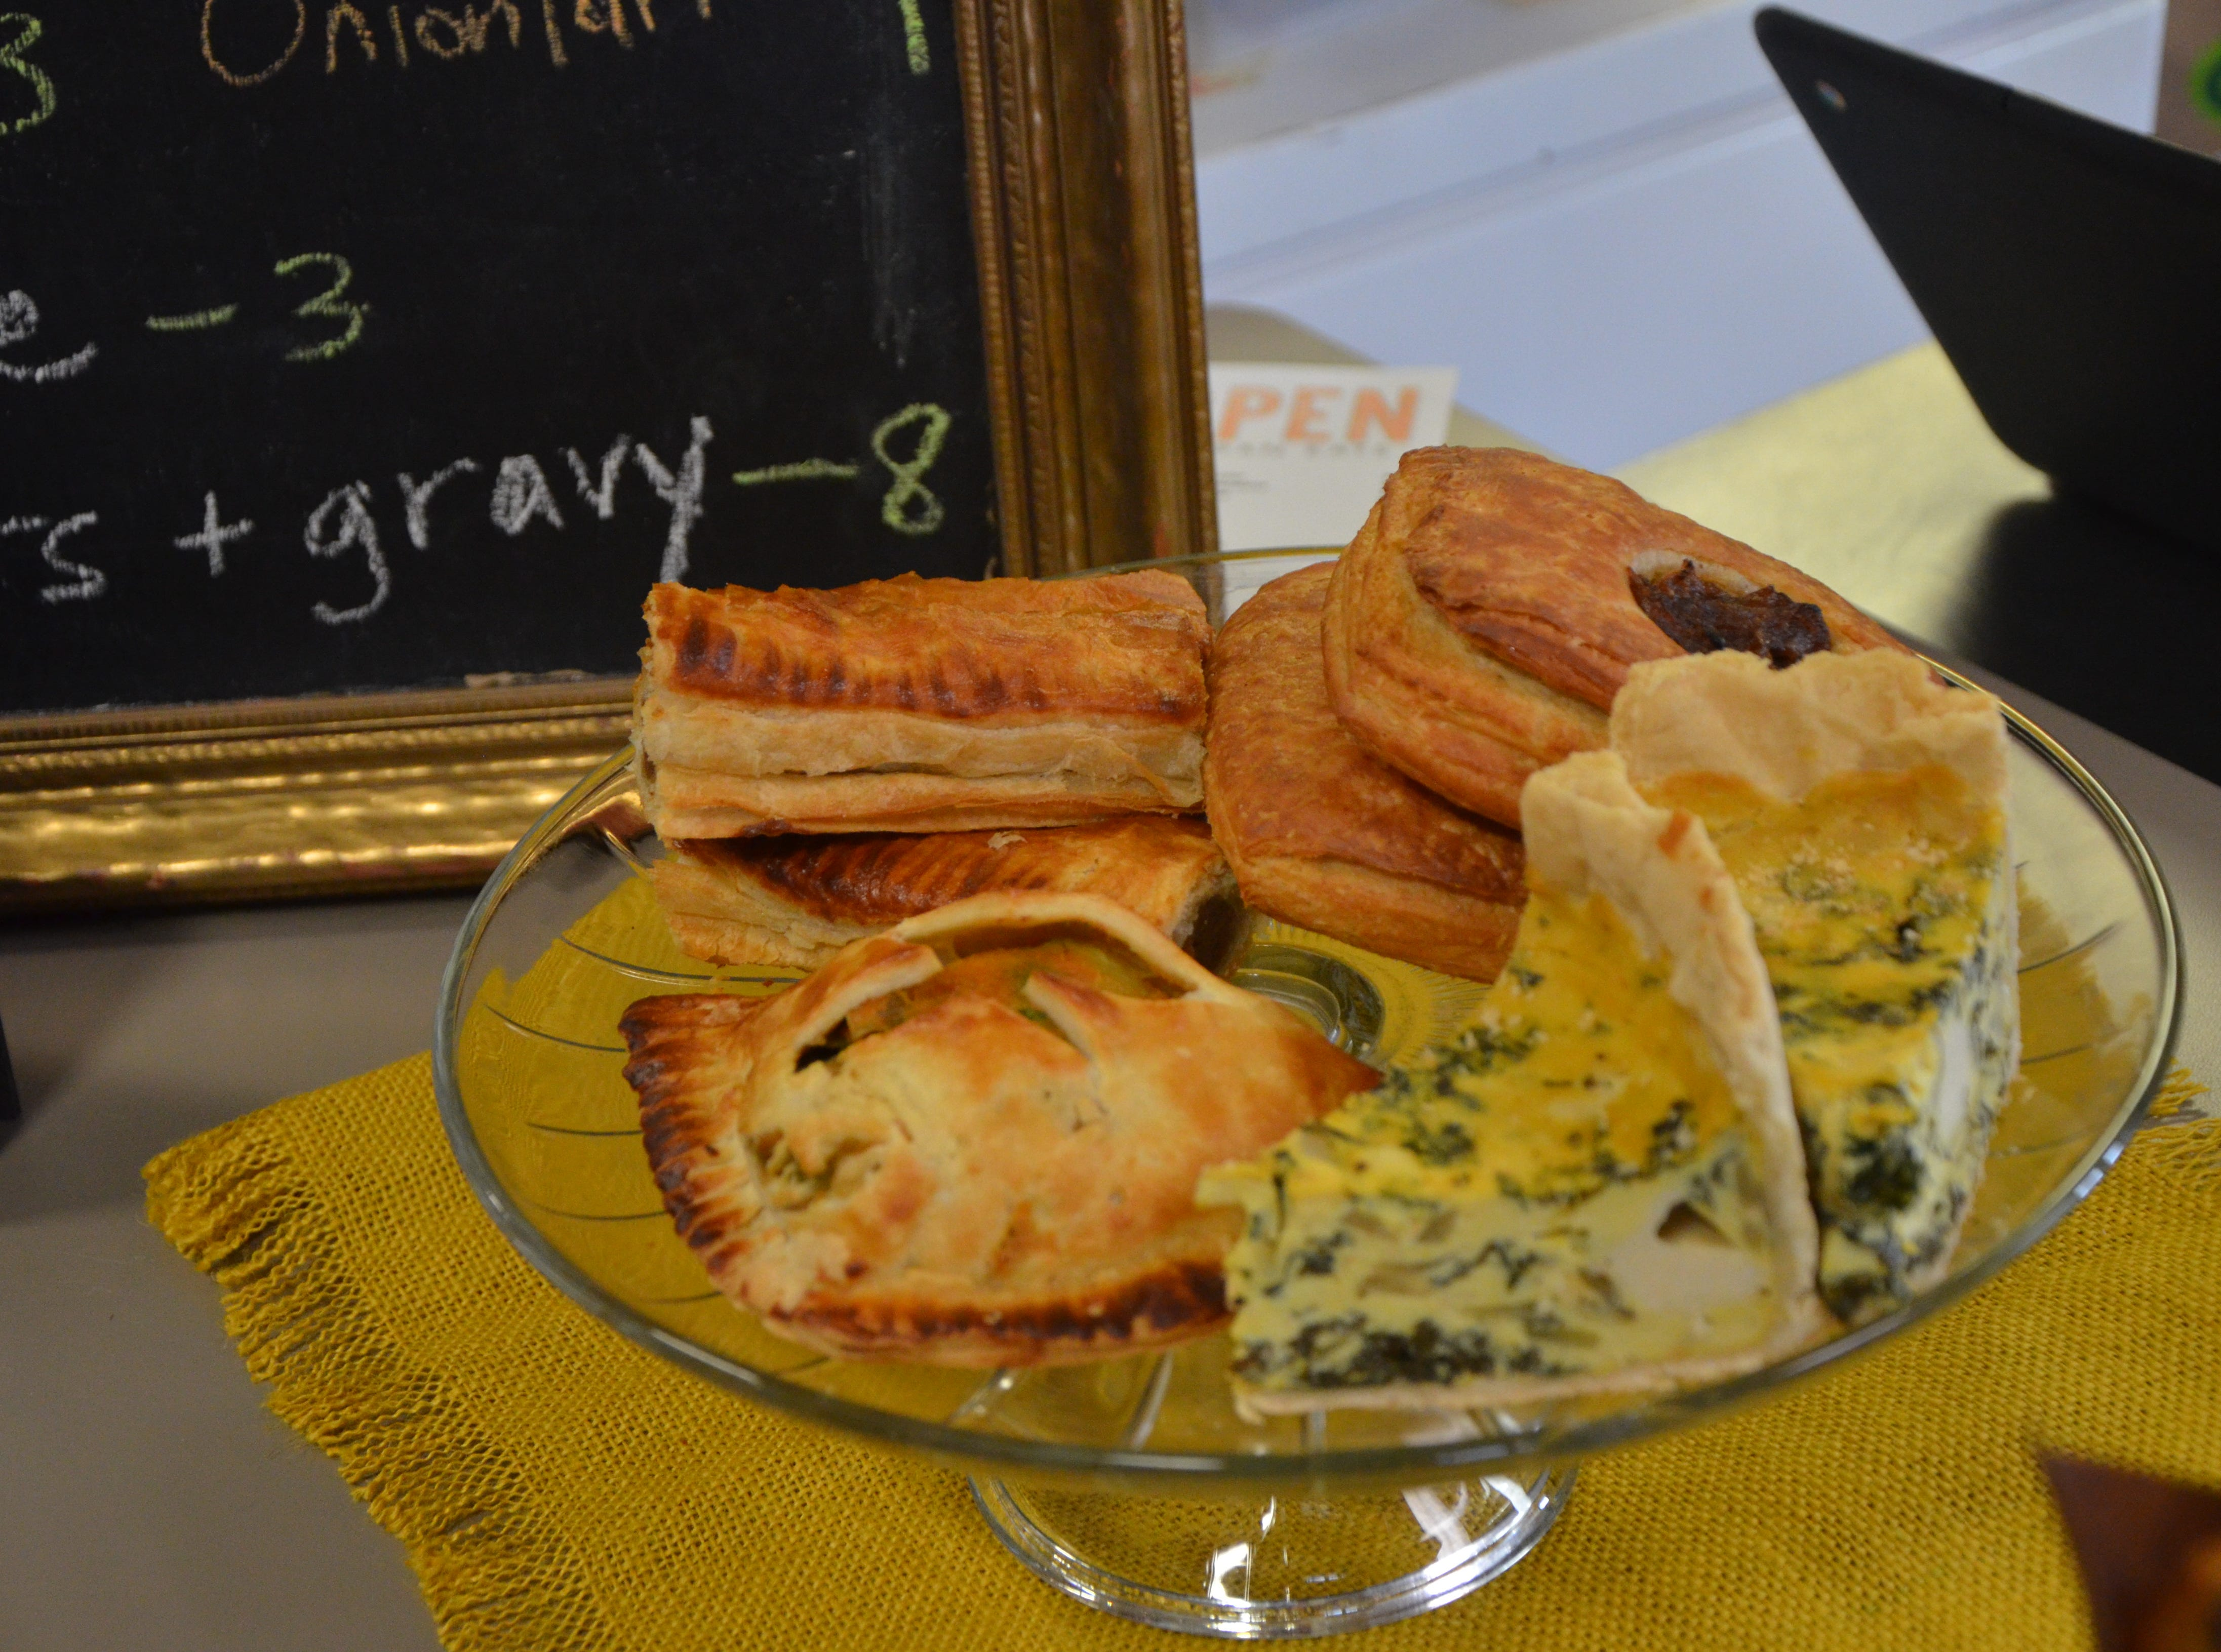 Among the savory vegan pastries customers can find at the Pop-up Patisserie at Sprout Grocery + Kitchen, 503 Military Road, are onion tarts, quiches, sweet potato and brussel sprout hand pies and pigs-in-a-blanket.